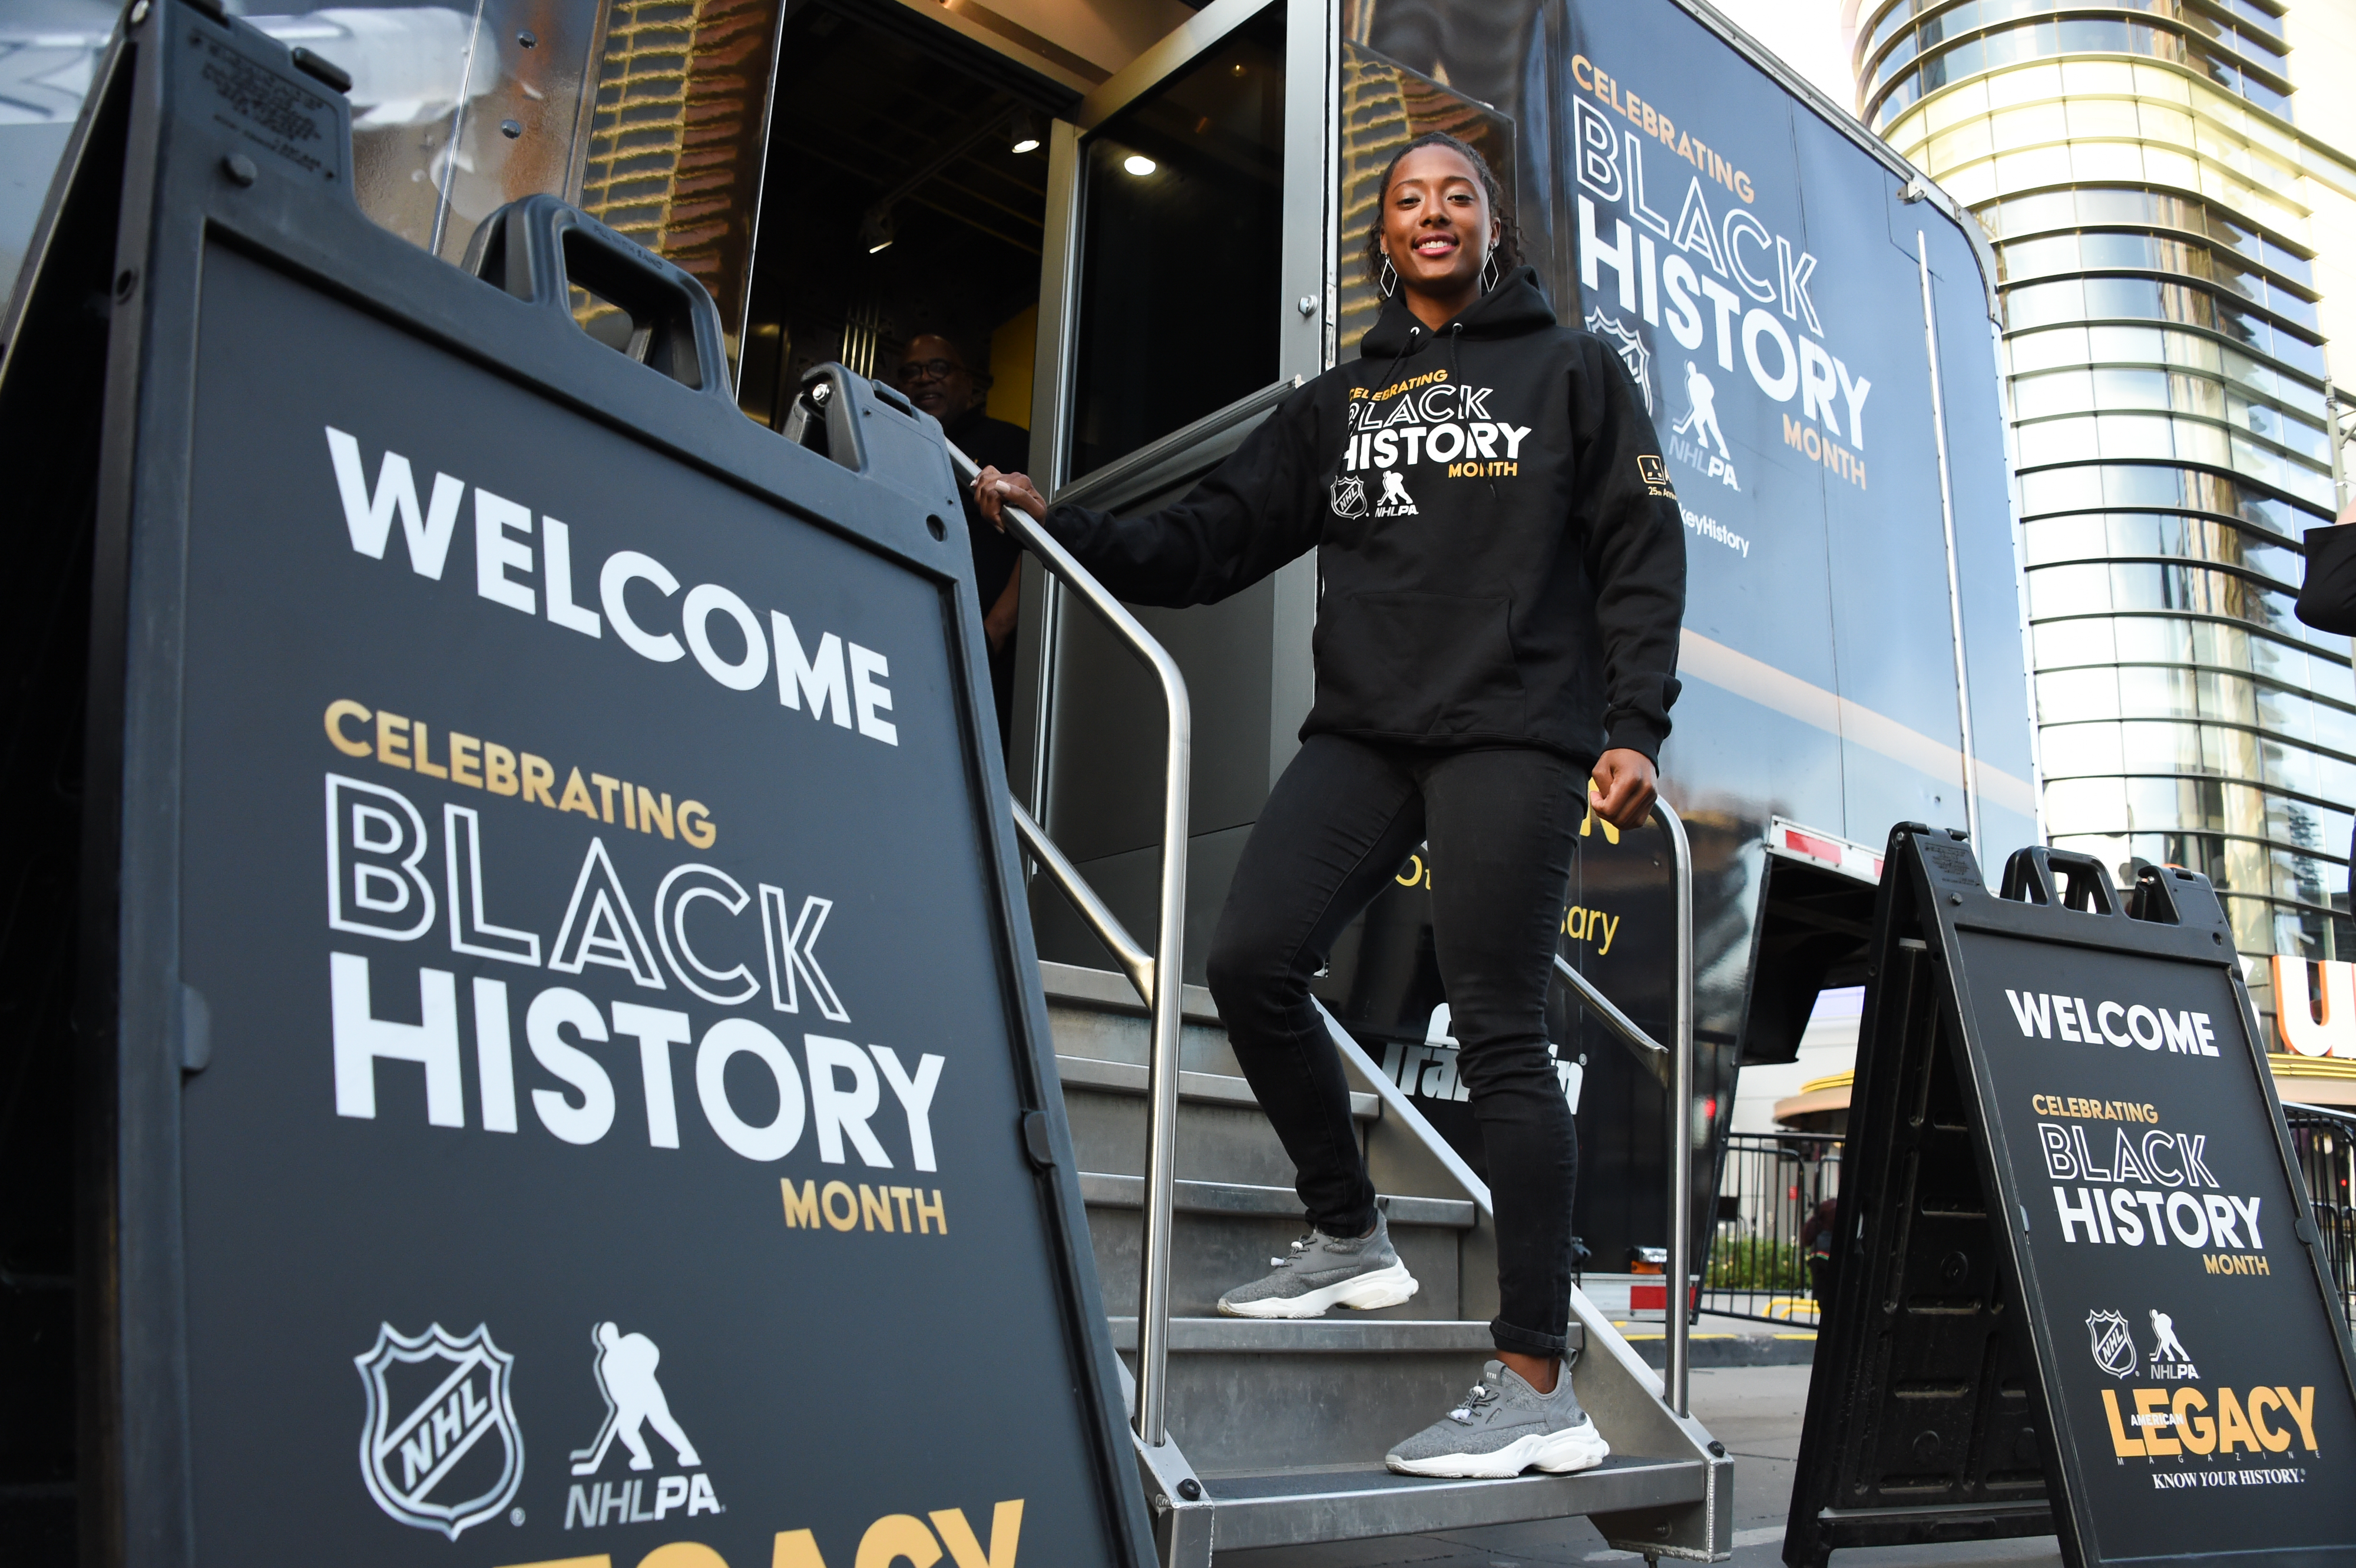 Blake Bolden, the first black NWHL player, poses in front of the Black Hockey History Museum before the game between the Pittsburgh Penguins and the Los Angeles Kings at STAPLES Center on February 26, 2020 in Los Angeles, California.